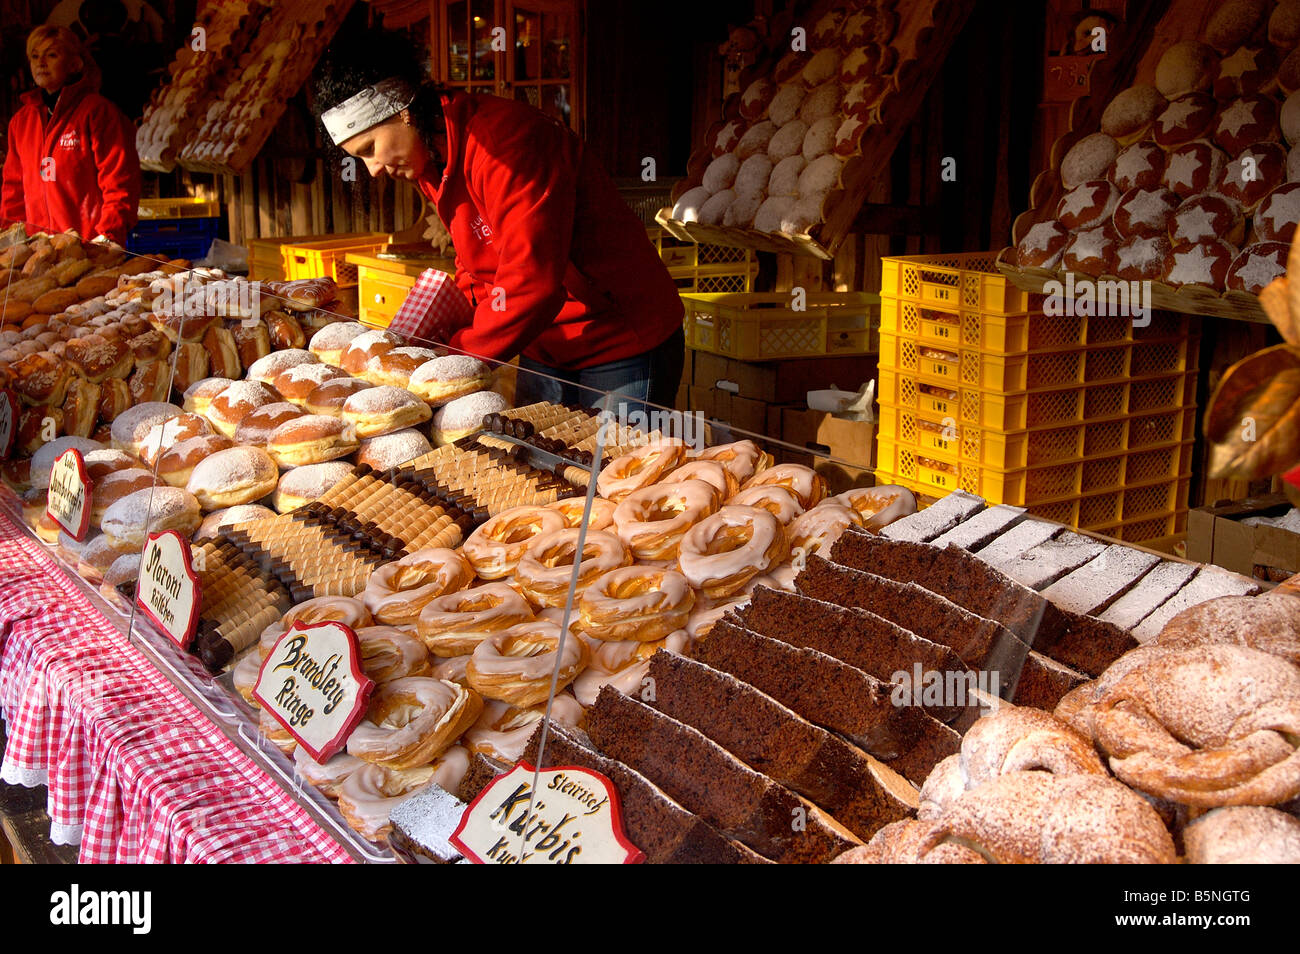 Cake and pastry stall Vienna Christmas market Stock Photo, Royalty ...